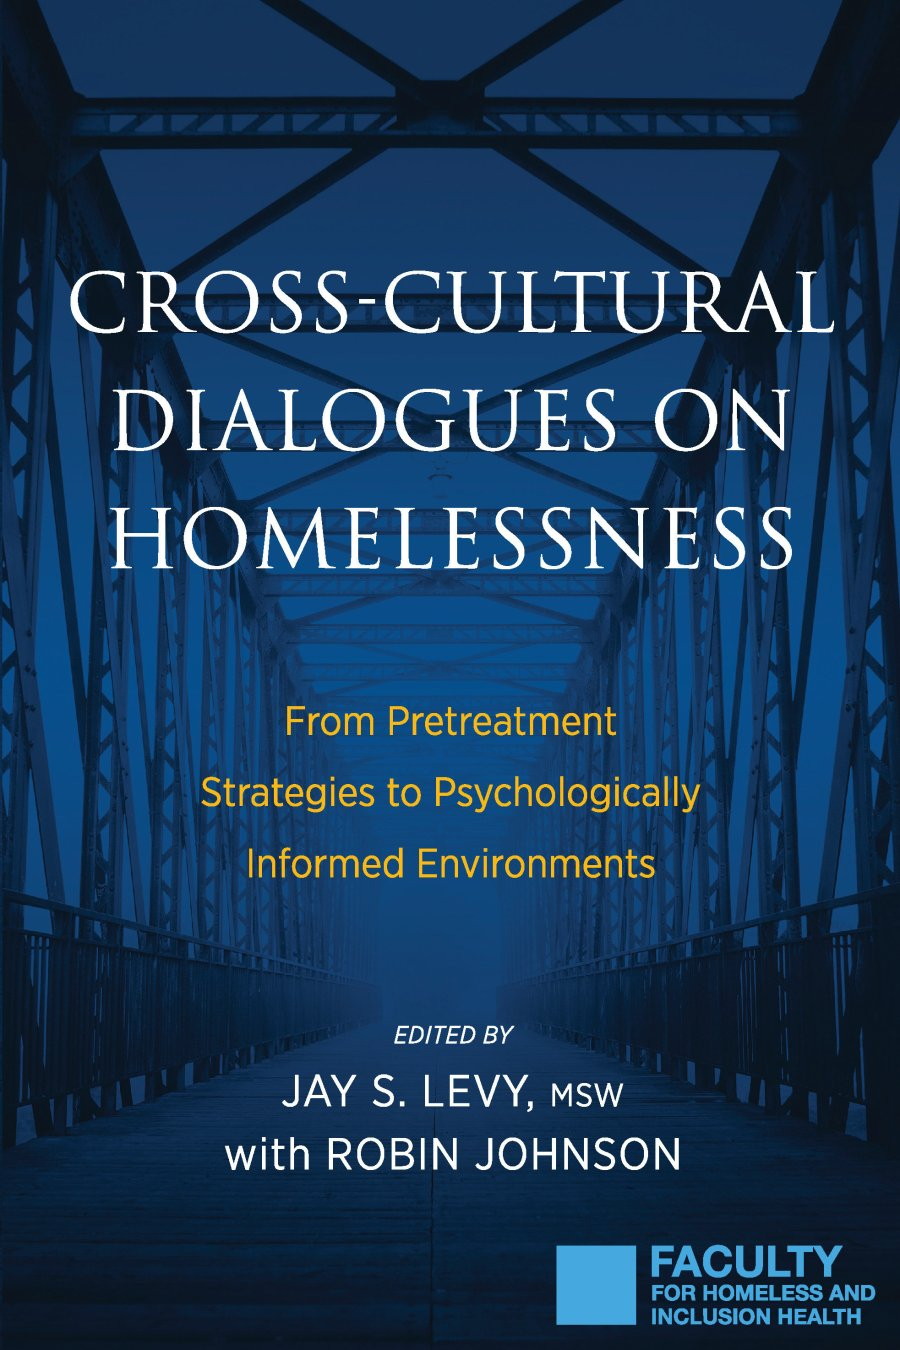 Cross-Cultural Dialogues on Homelessness 978-1-61599-366-6